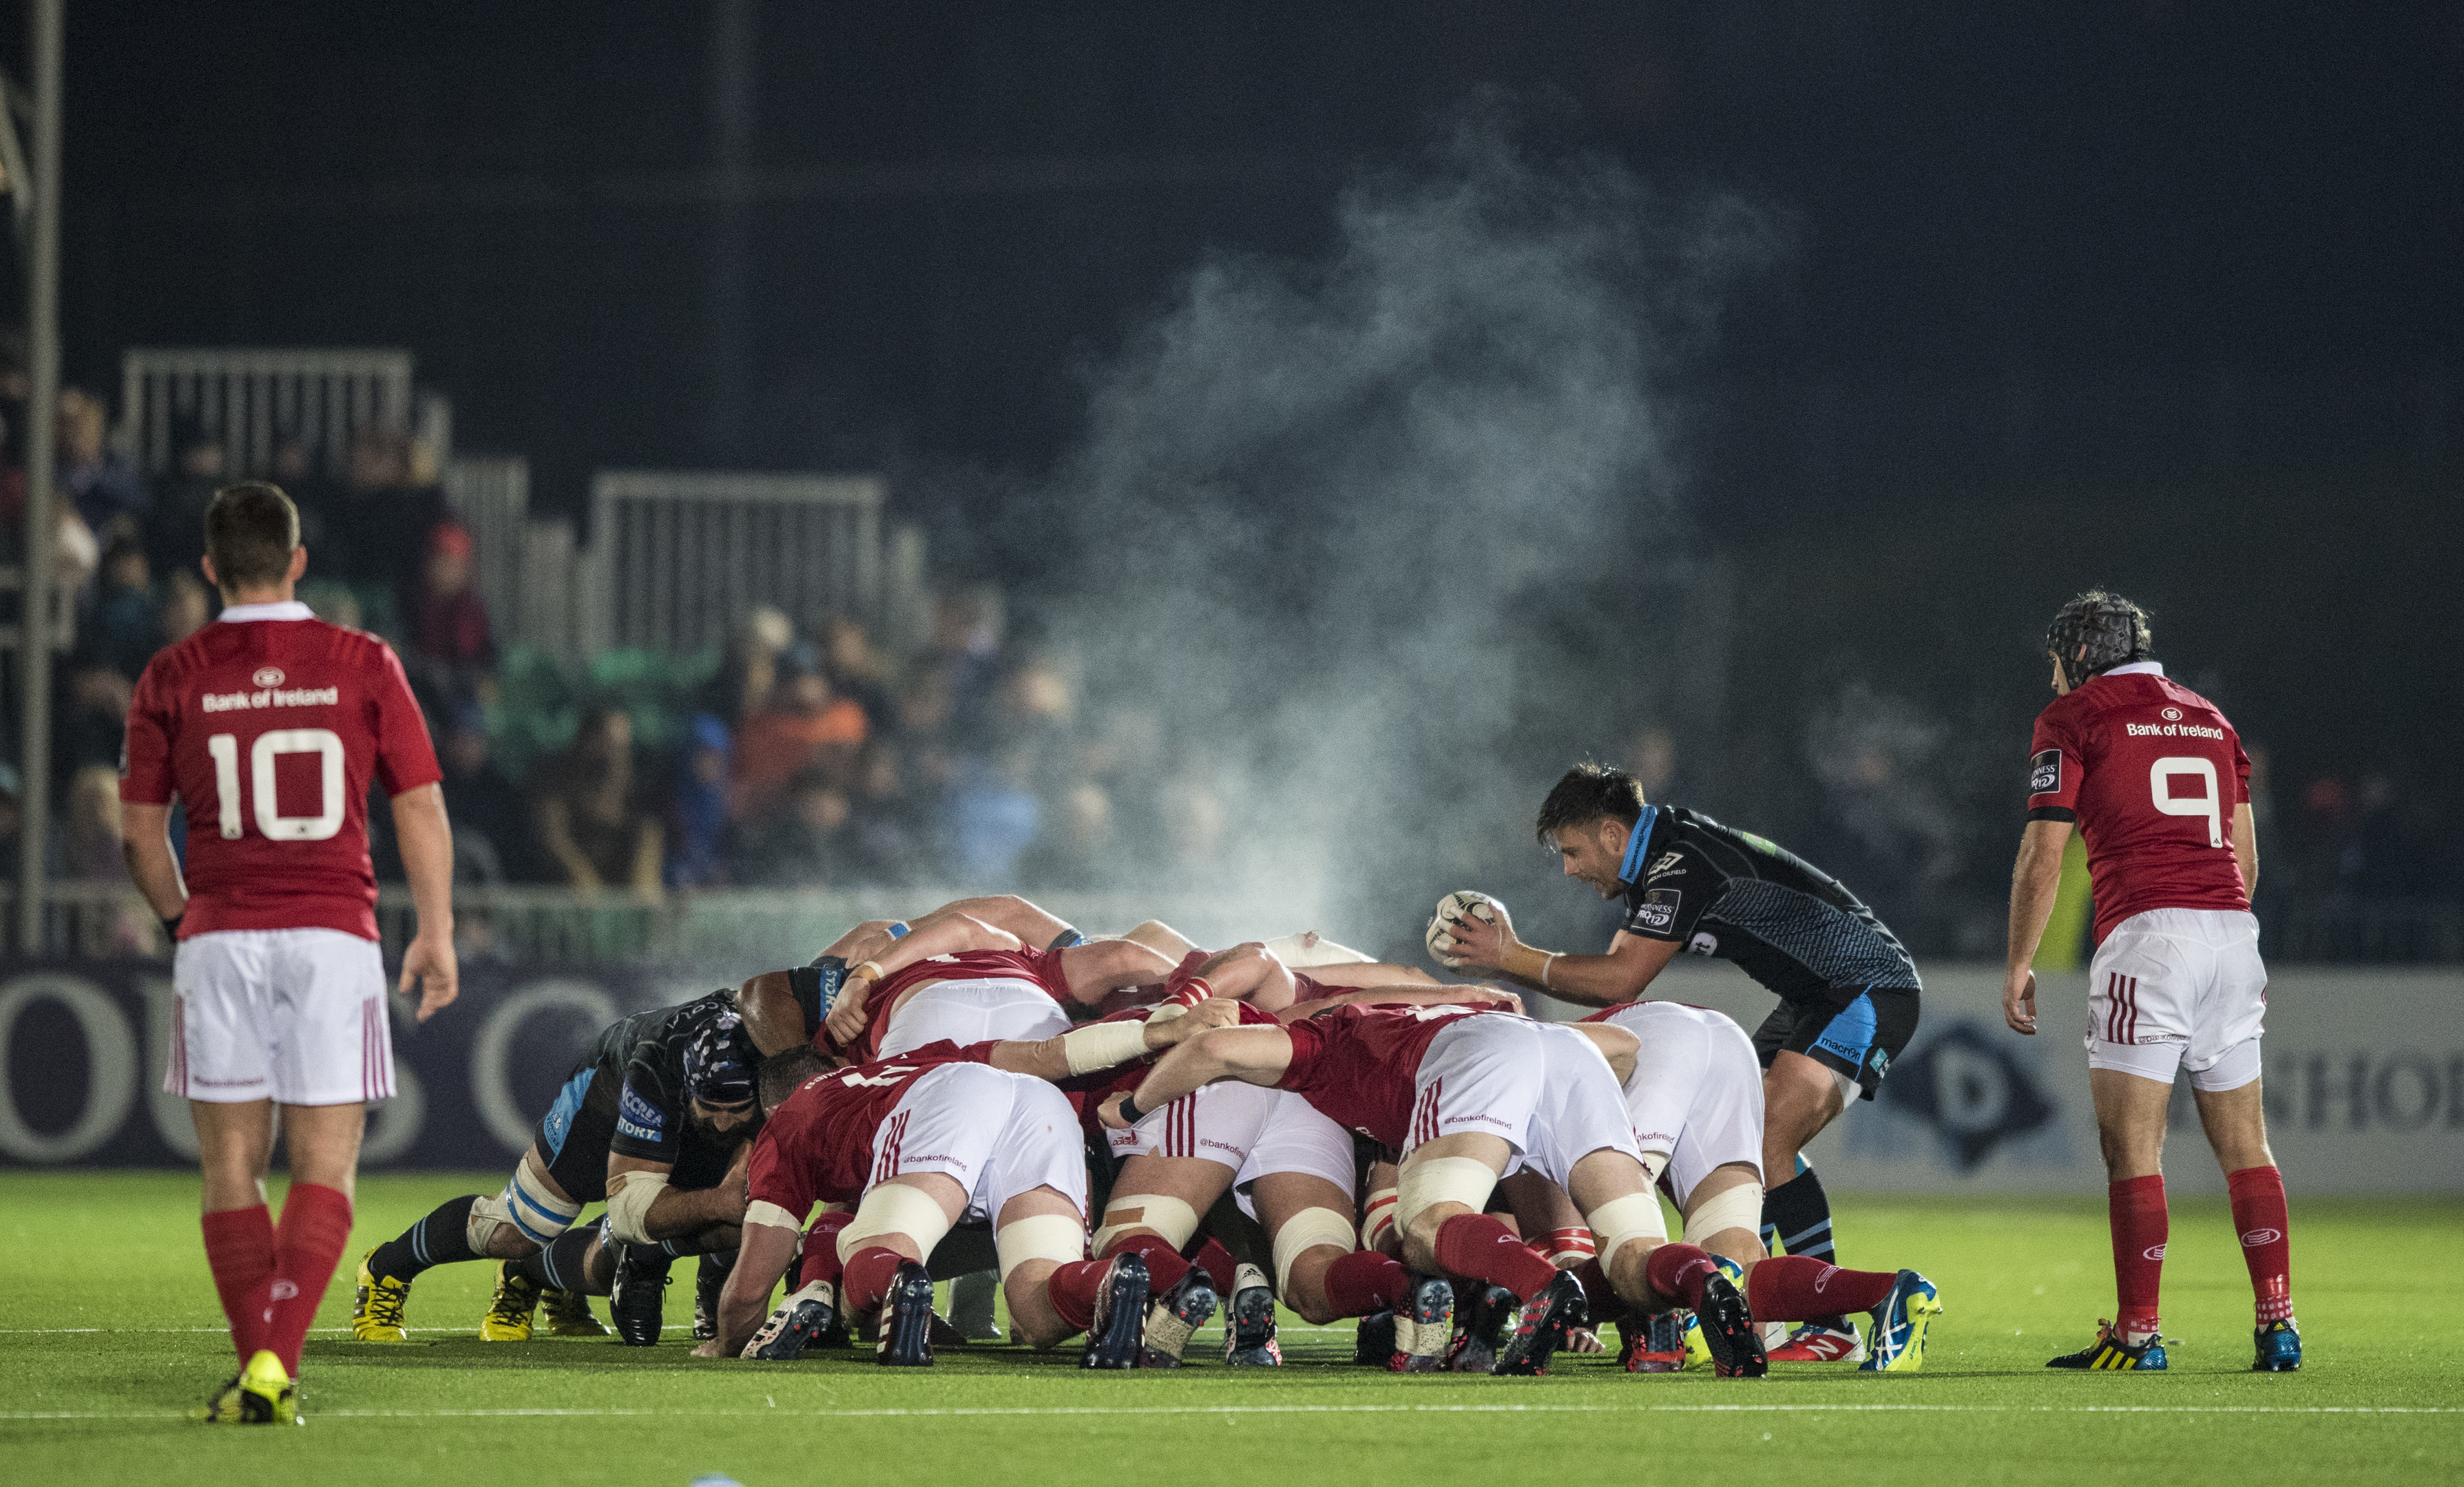 The Glasgow and Munster packs lock horns at Scotstoun.